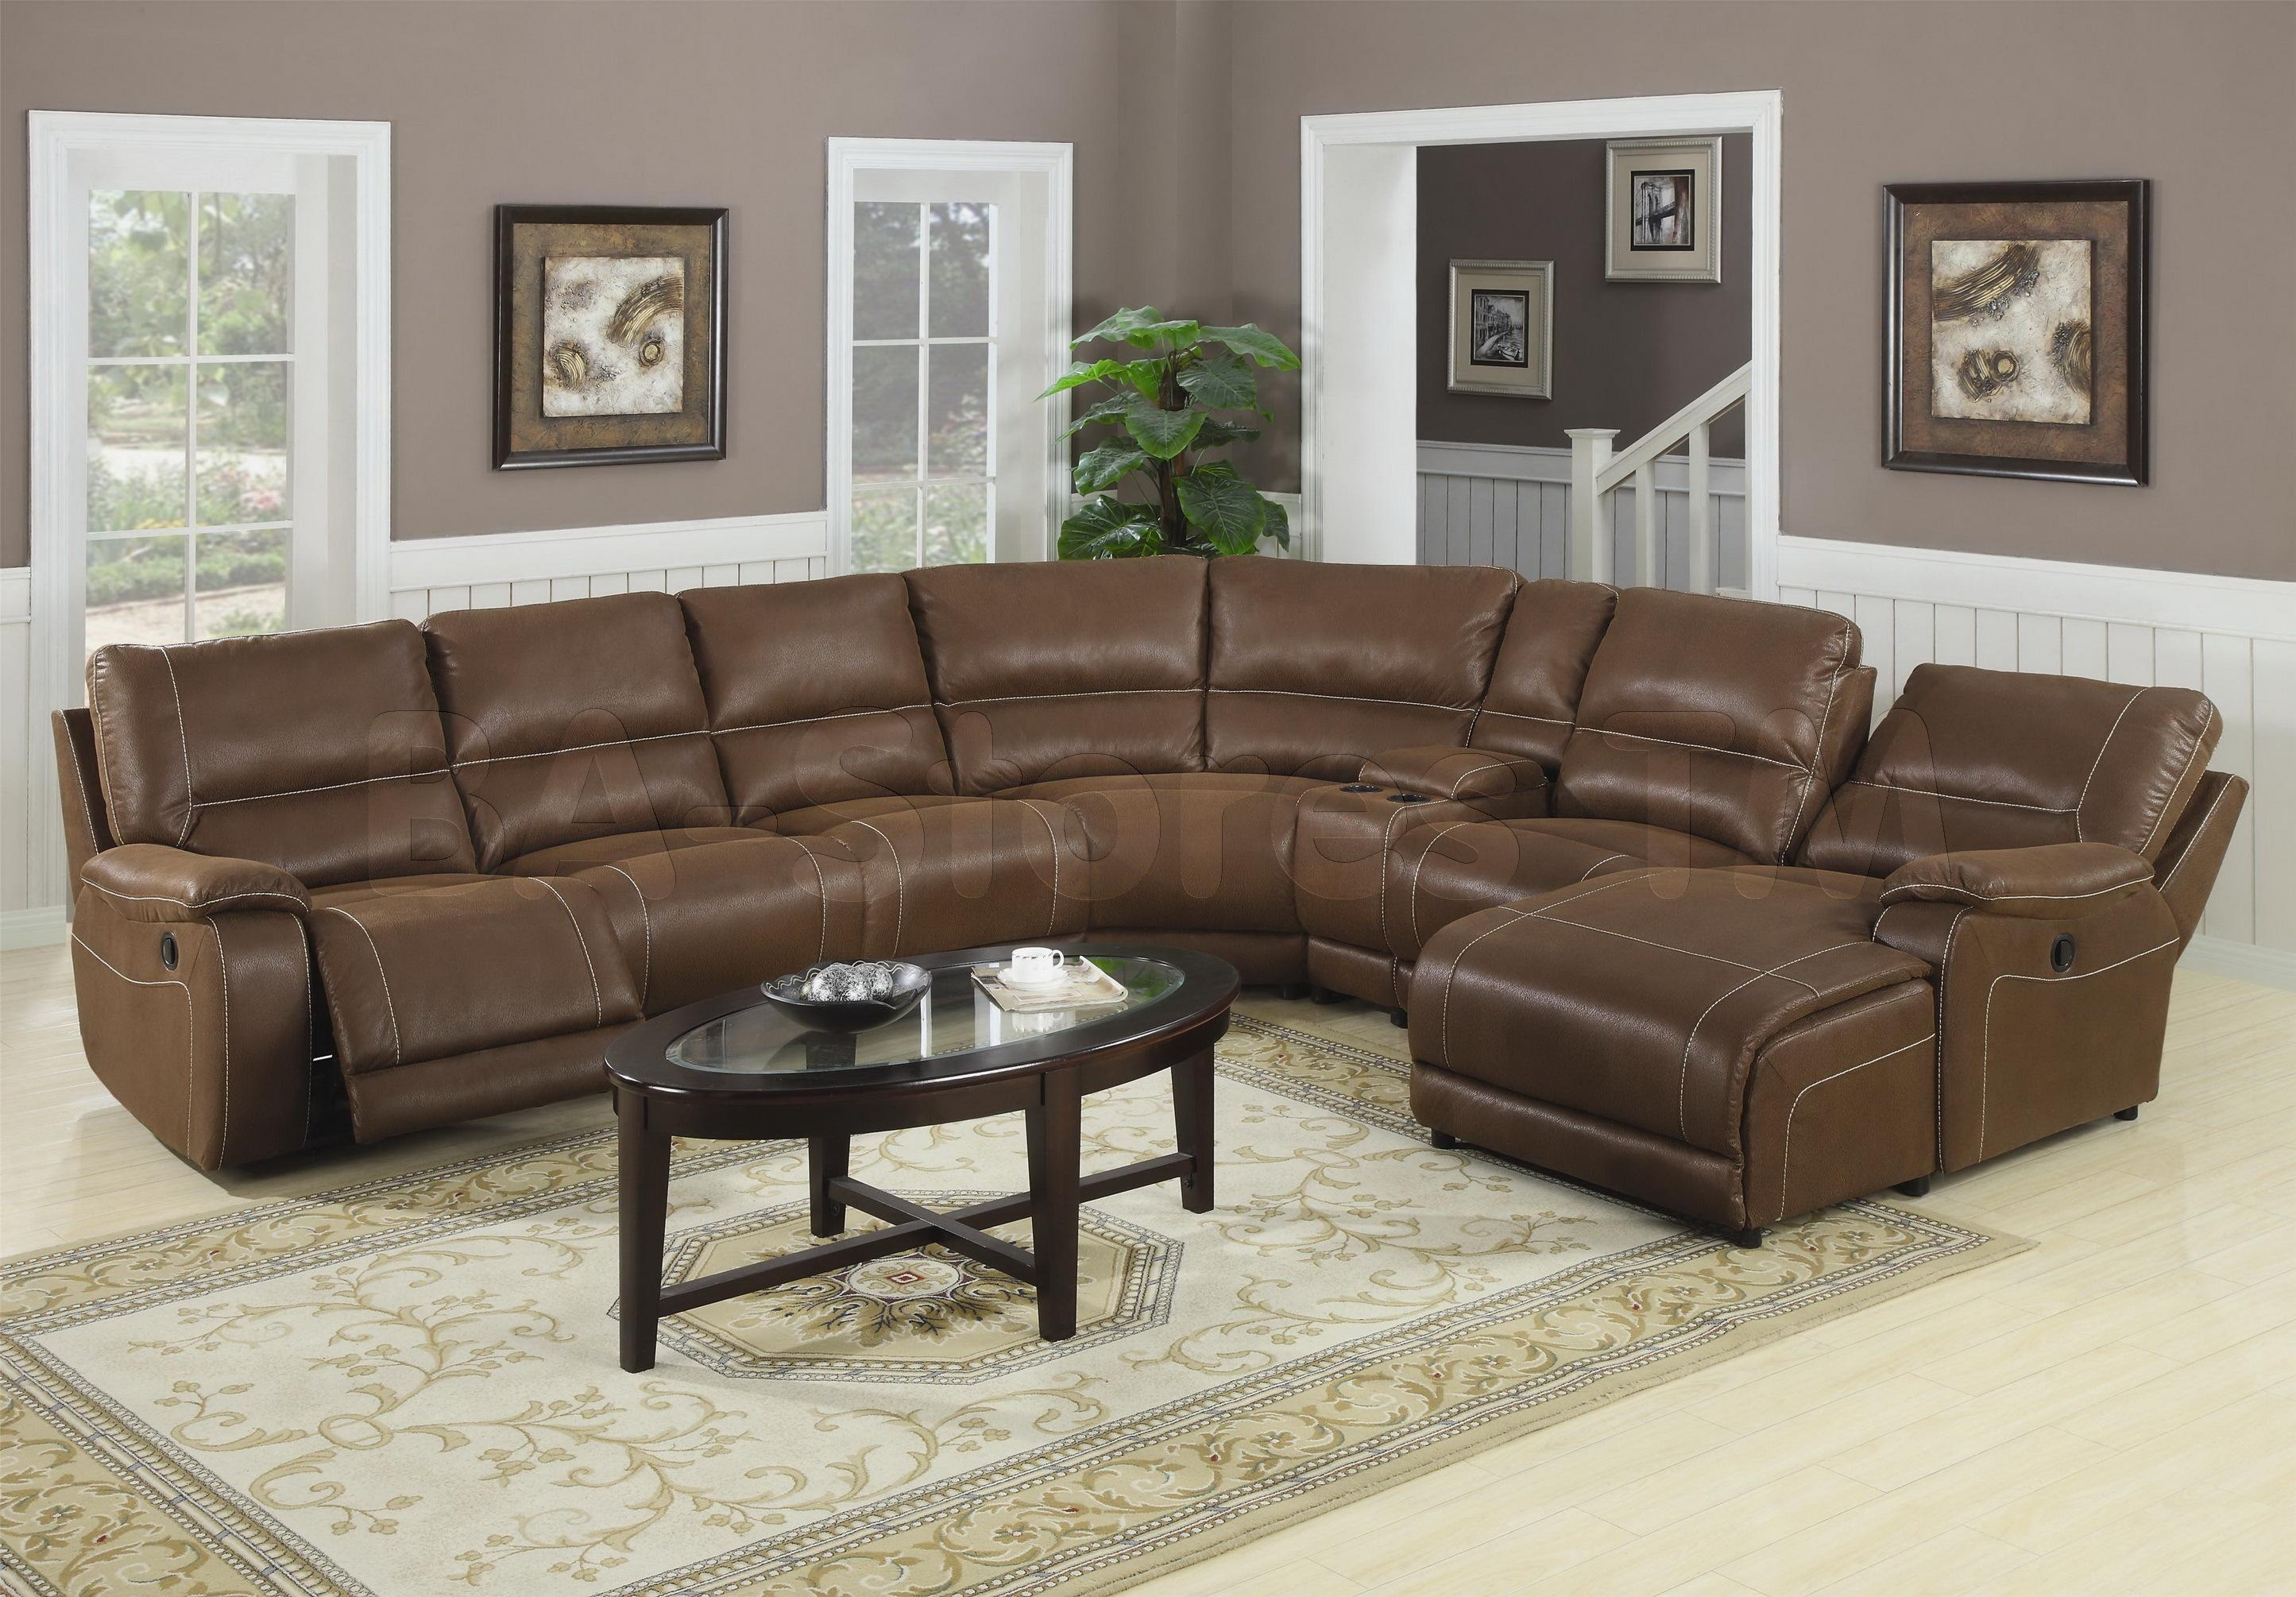 Long Sectional Sofa With Chaise | Tehranmix Decoration Throughout Long Chaise Sofa (Image 10 of 20)